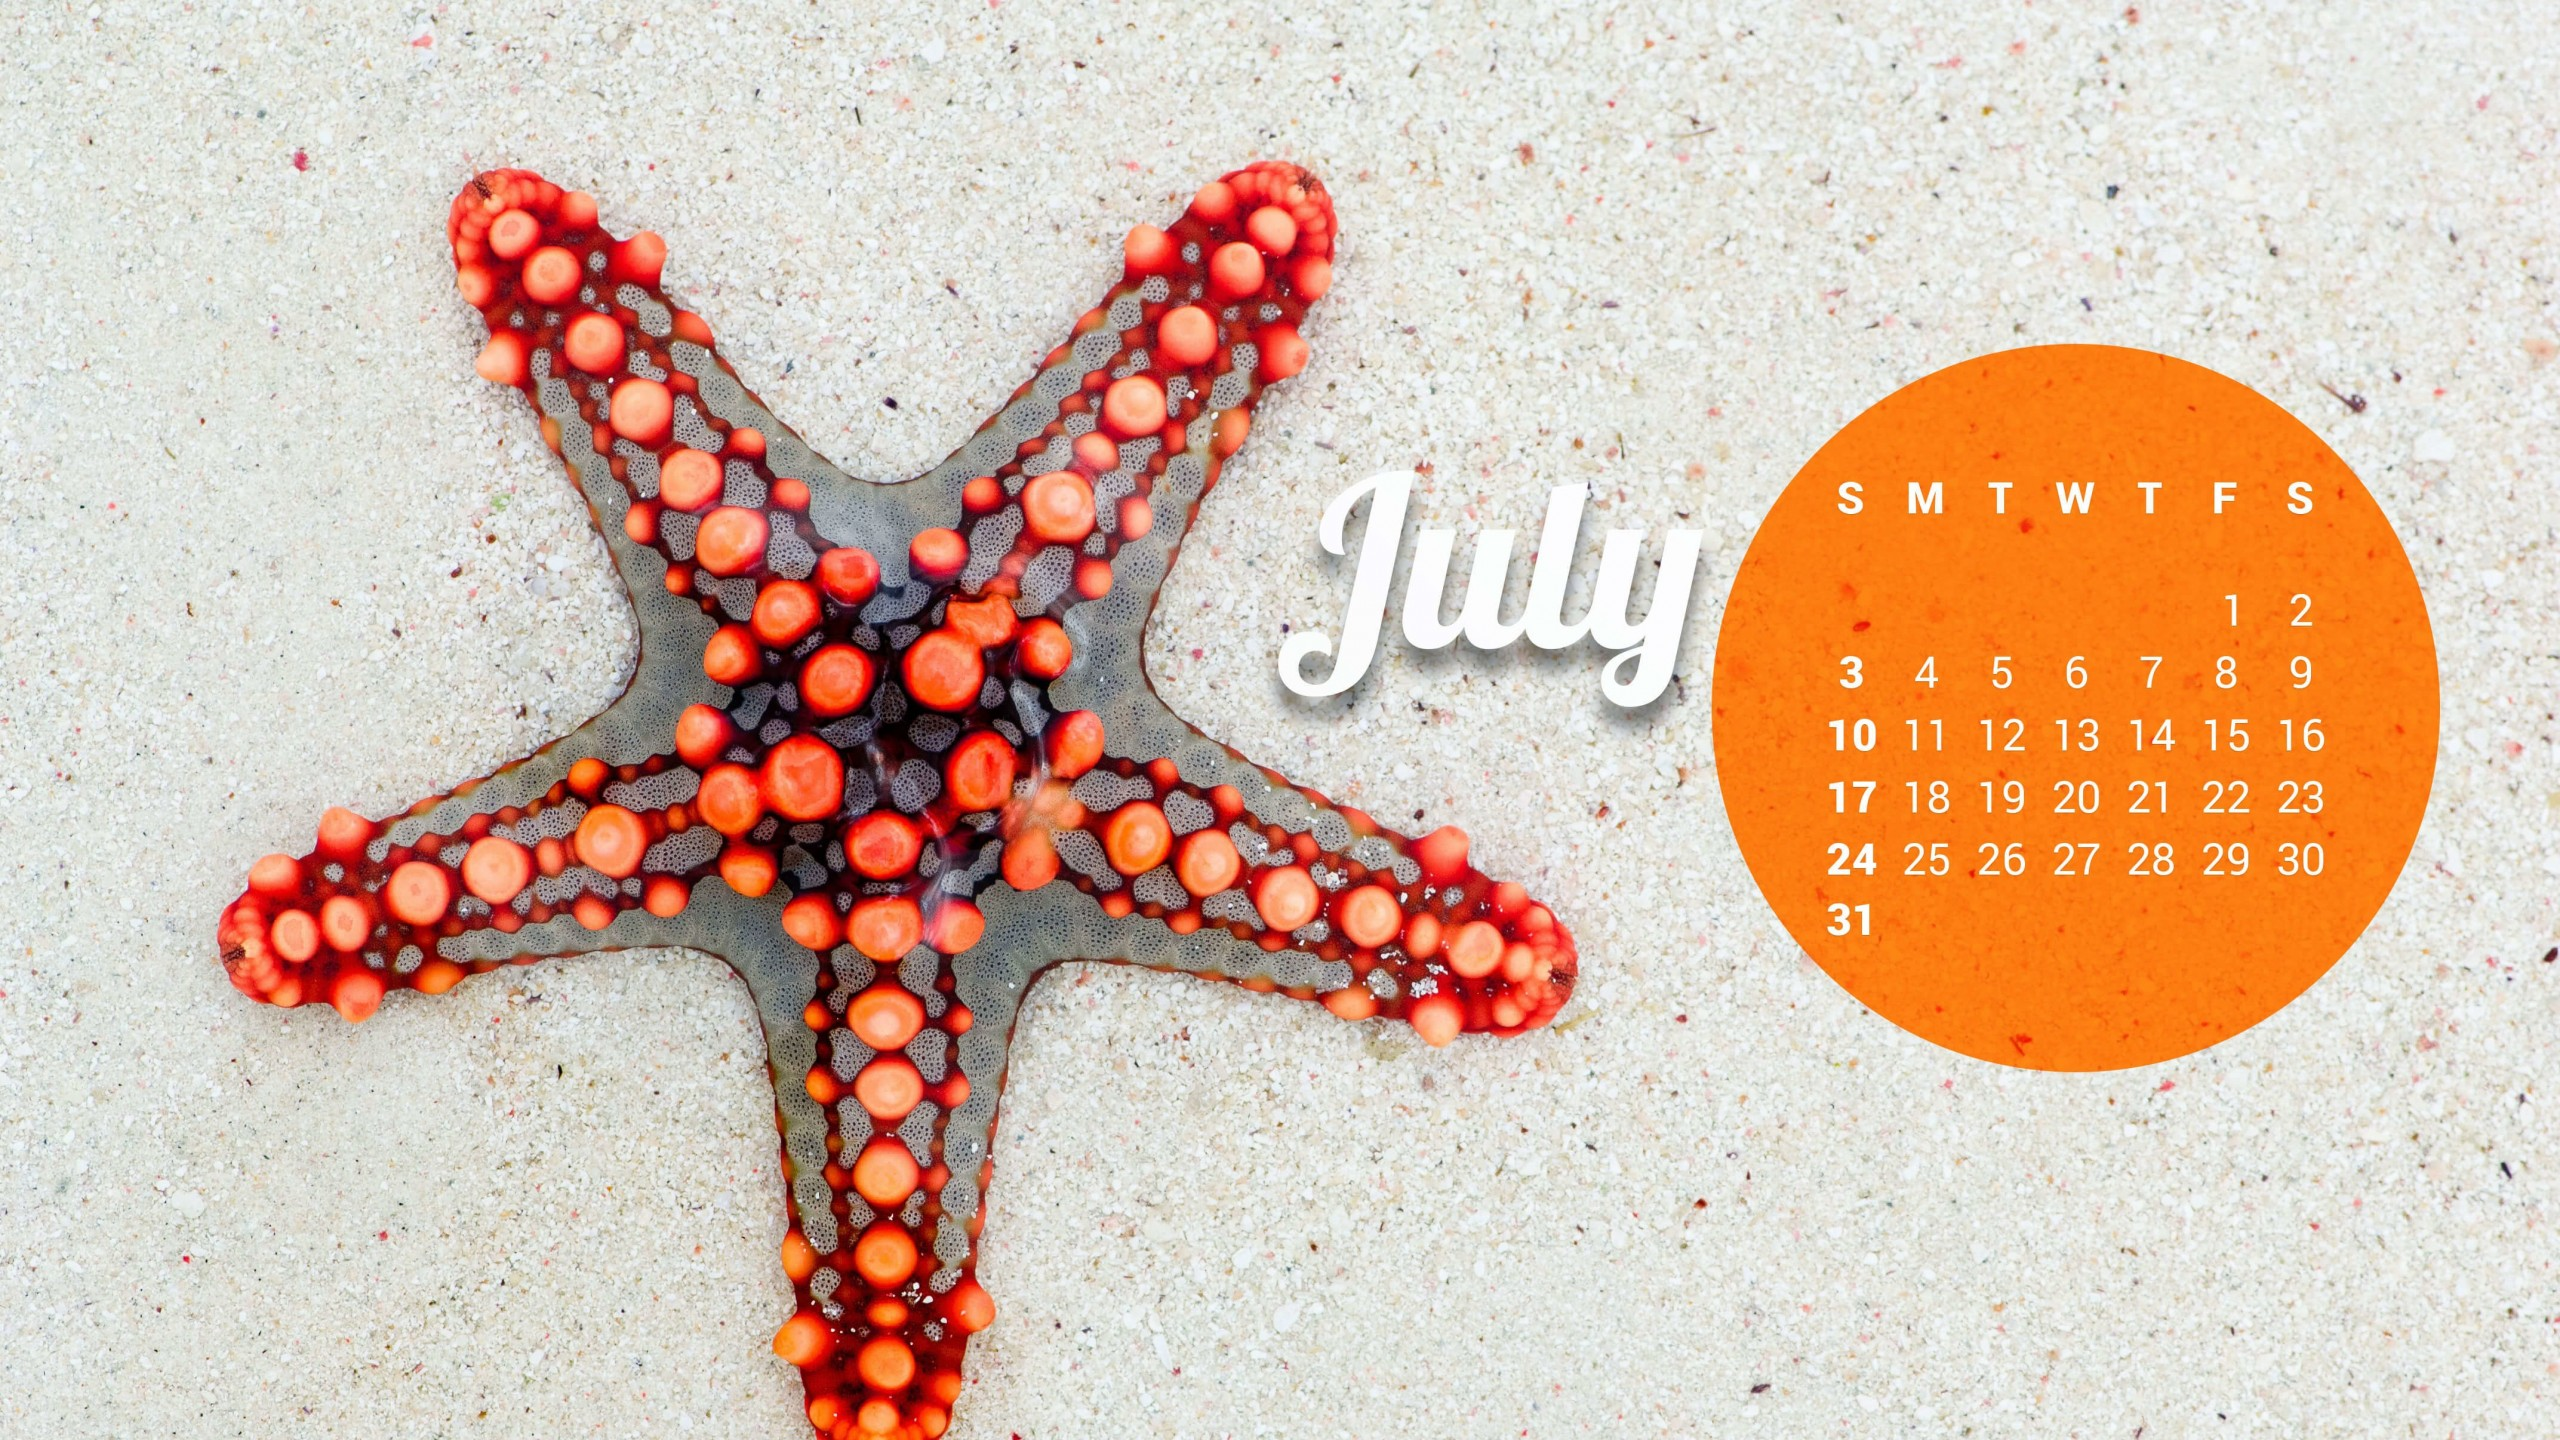 July 2016 Calendar Wallpaper for Desktop 2560x1440